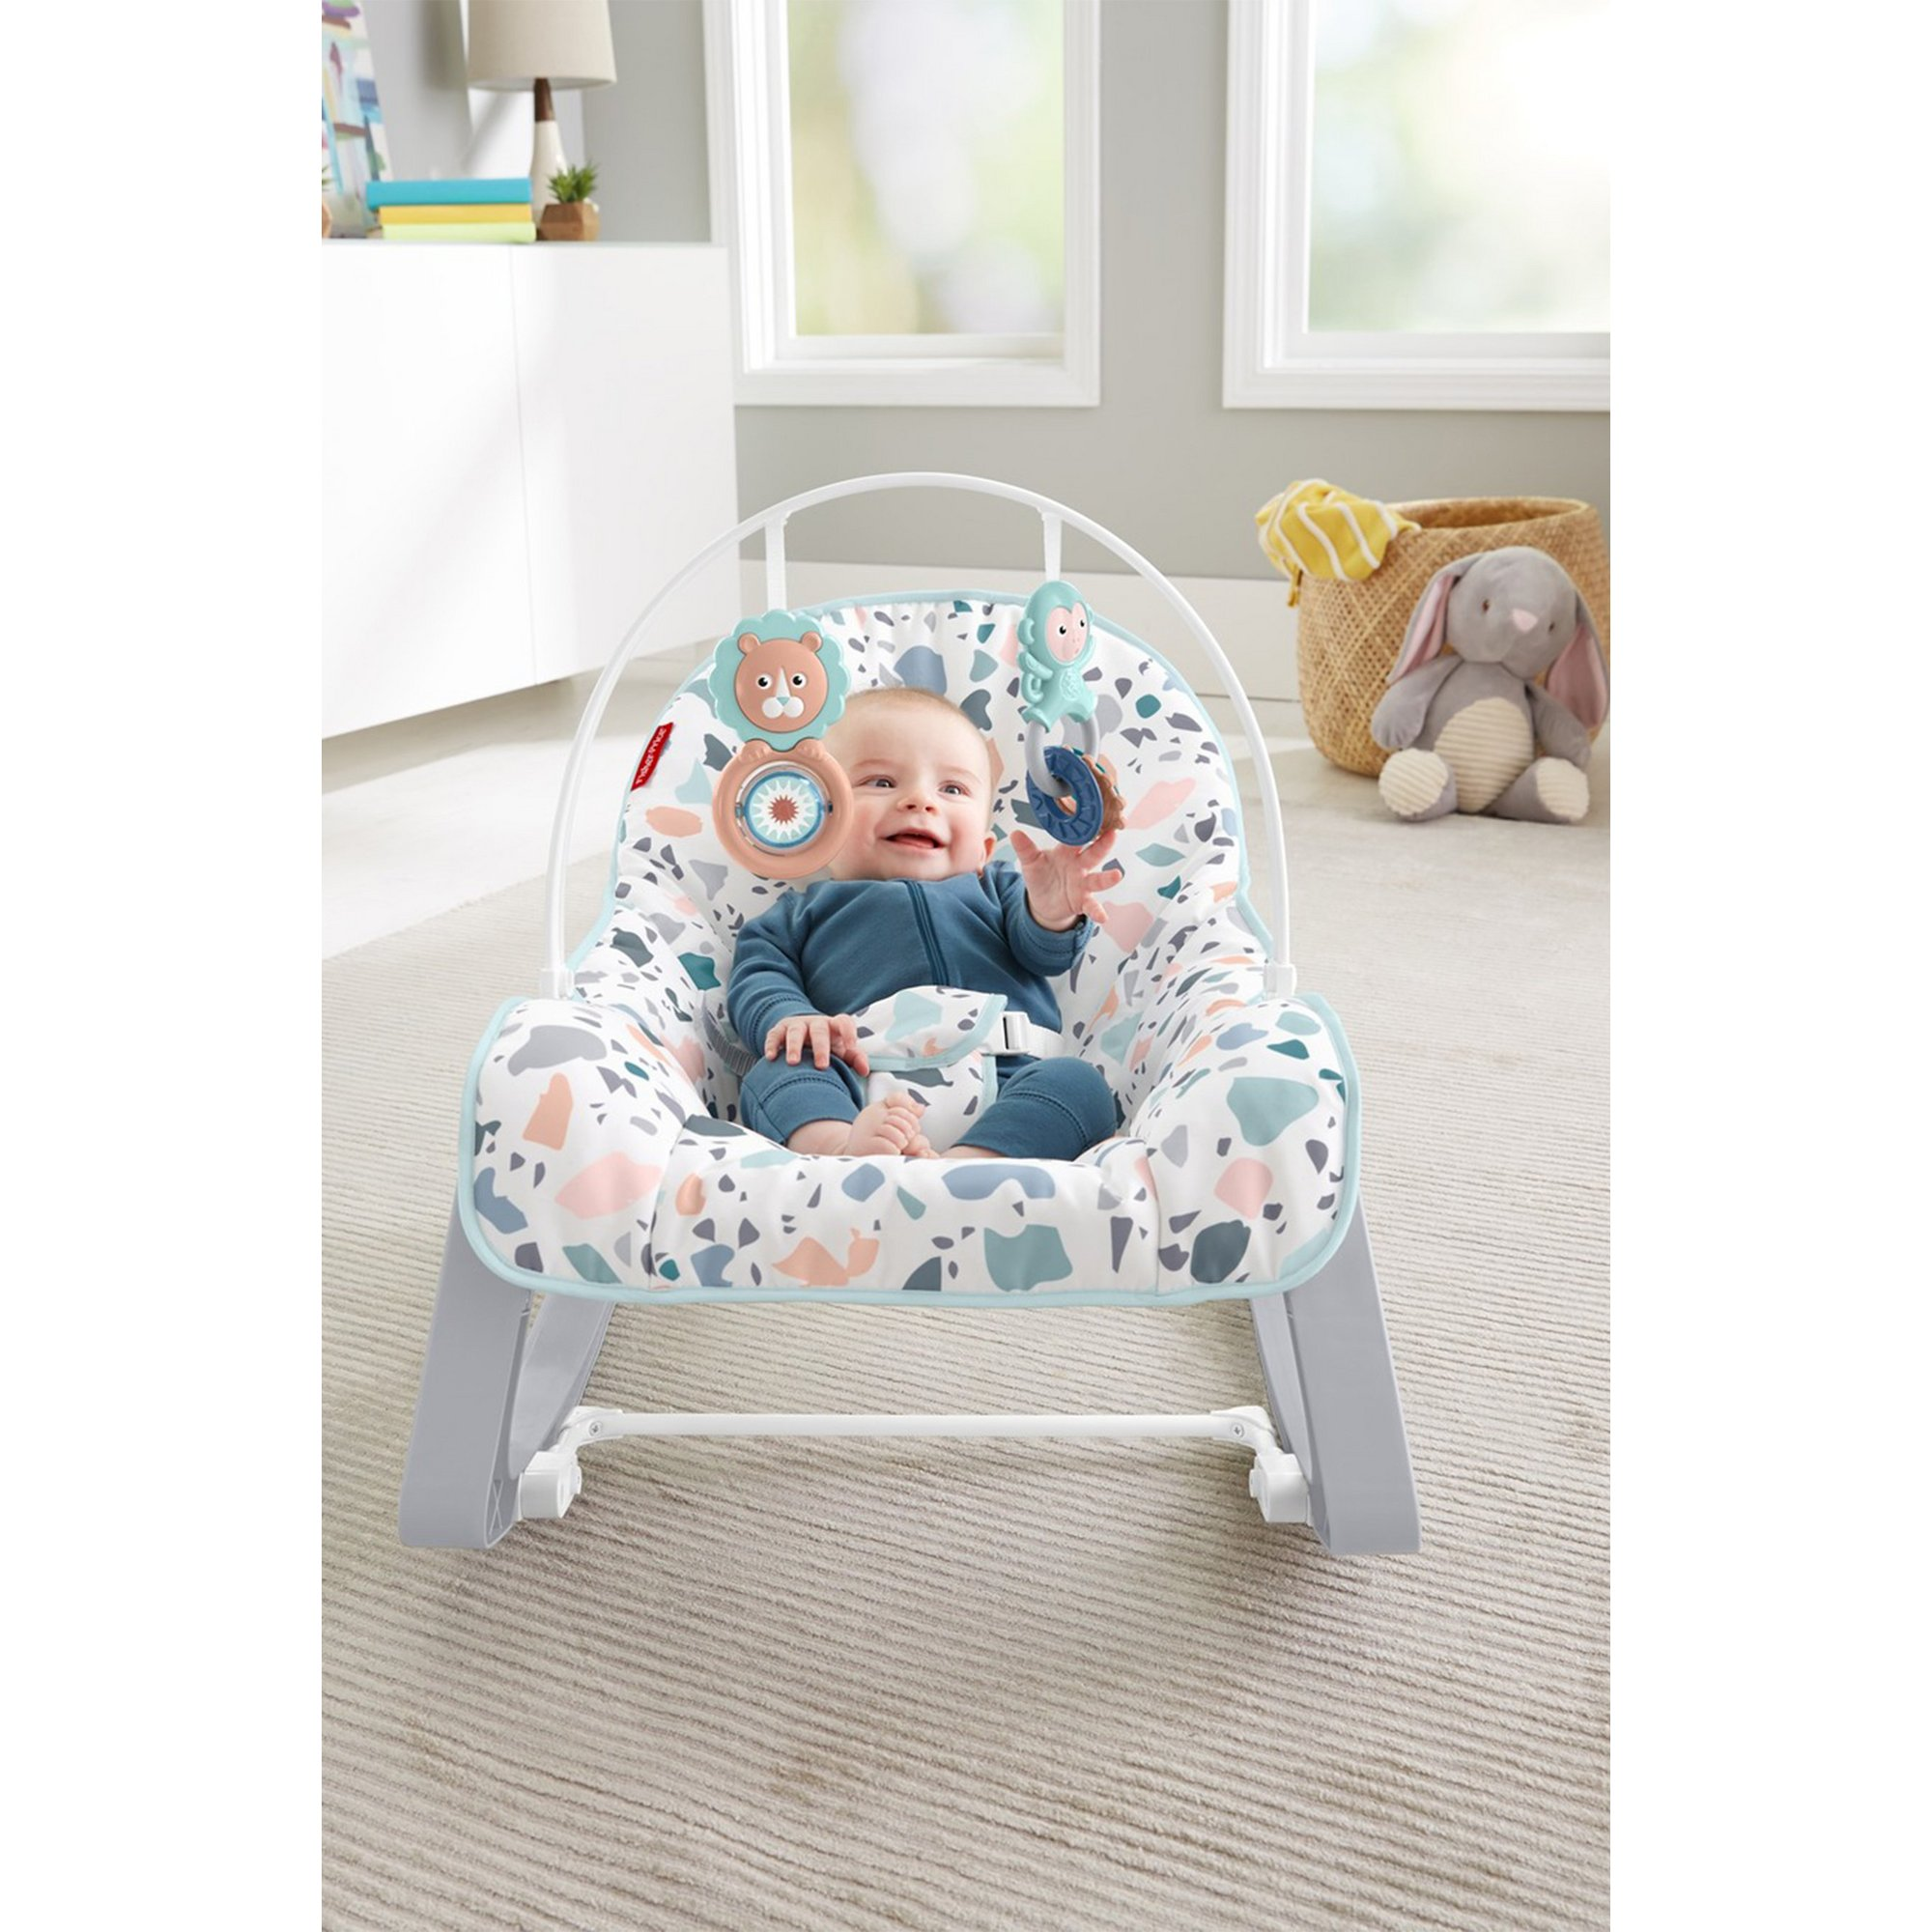 Image of Fisher-Price Infant-to-Toddler Rocker